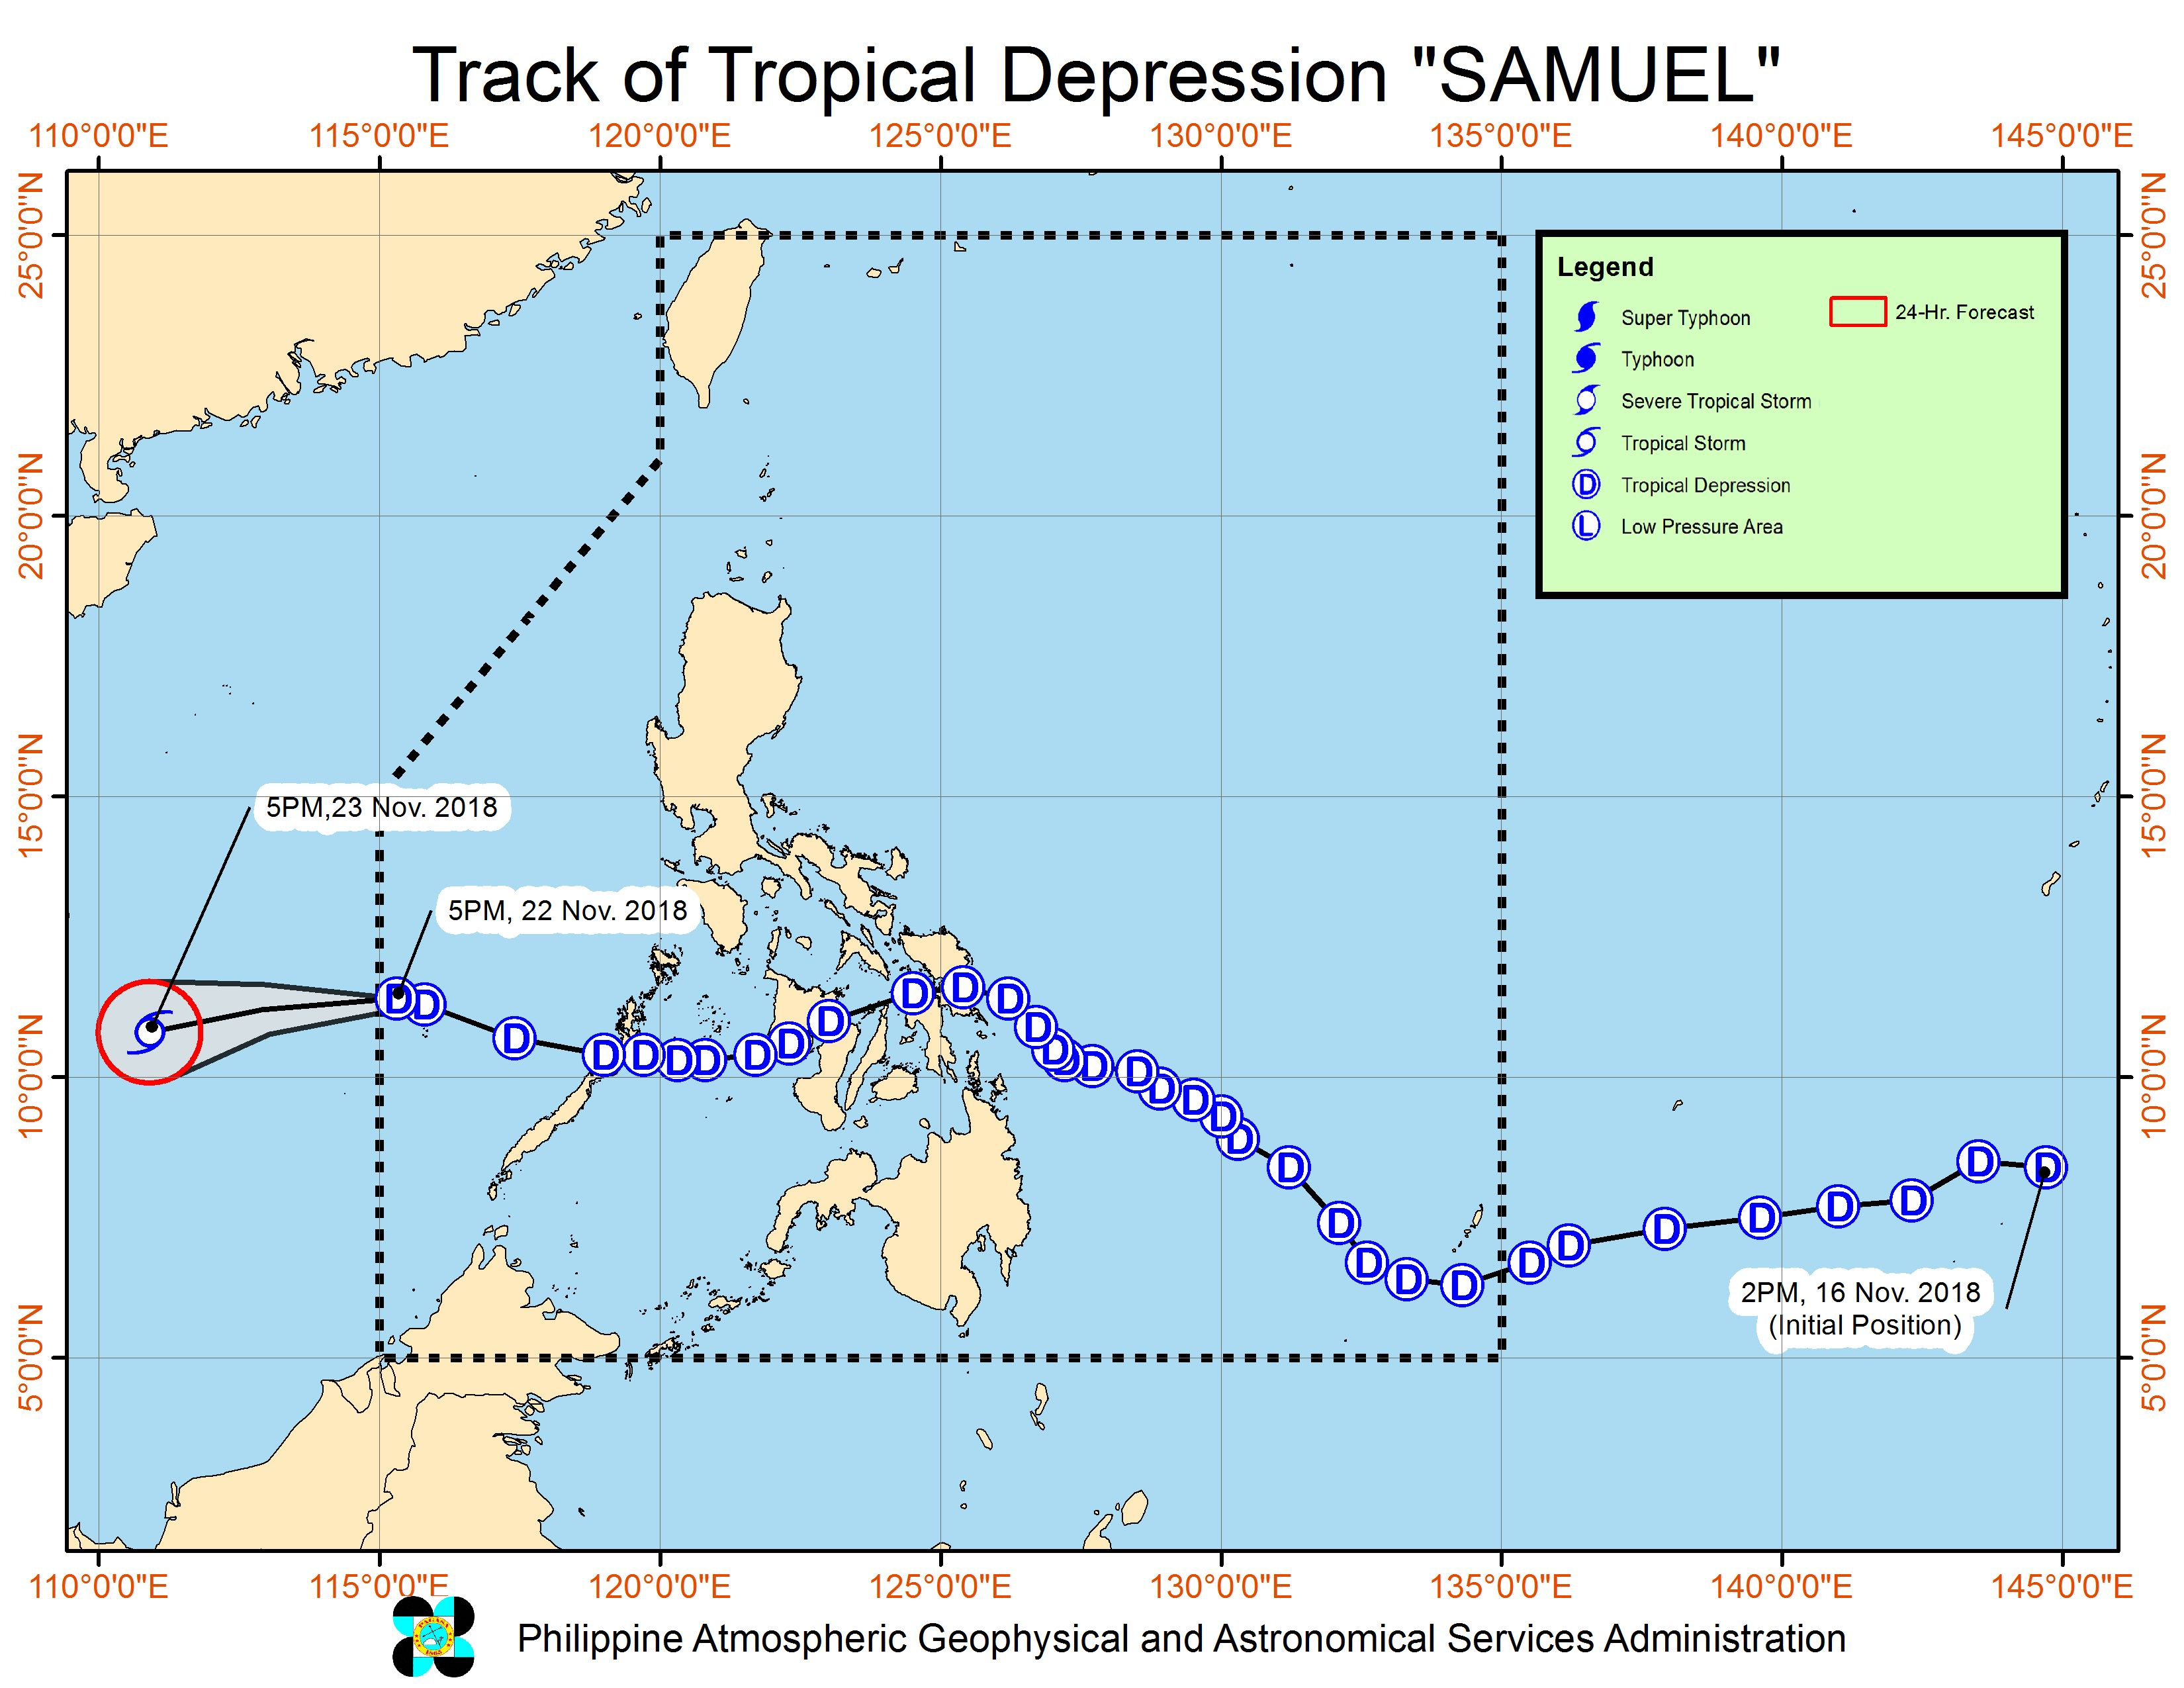 Forecast track of Tropical Depression Samuel as of November 22, 2018, 8 pm. Image from PAGASA